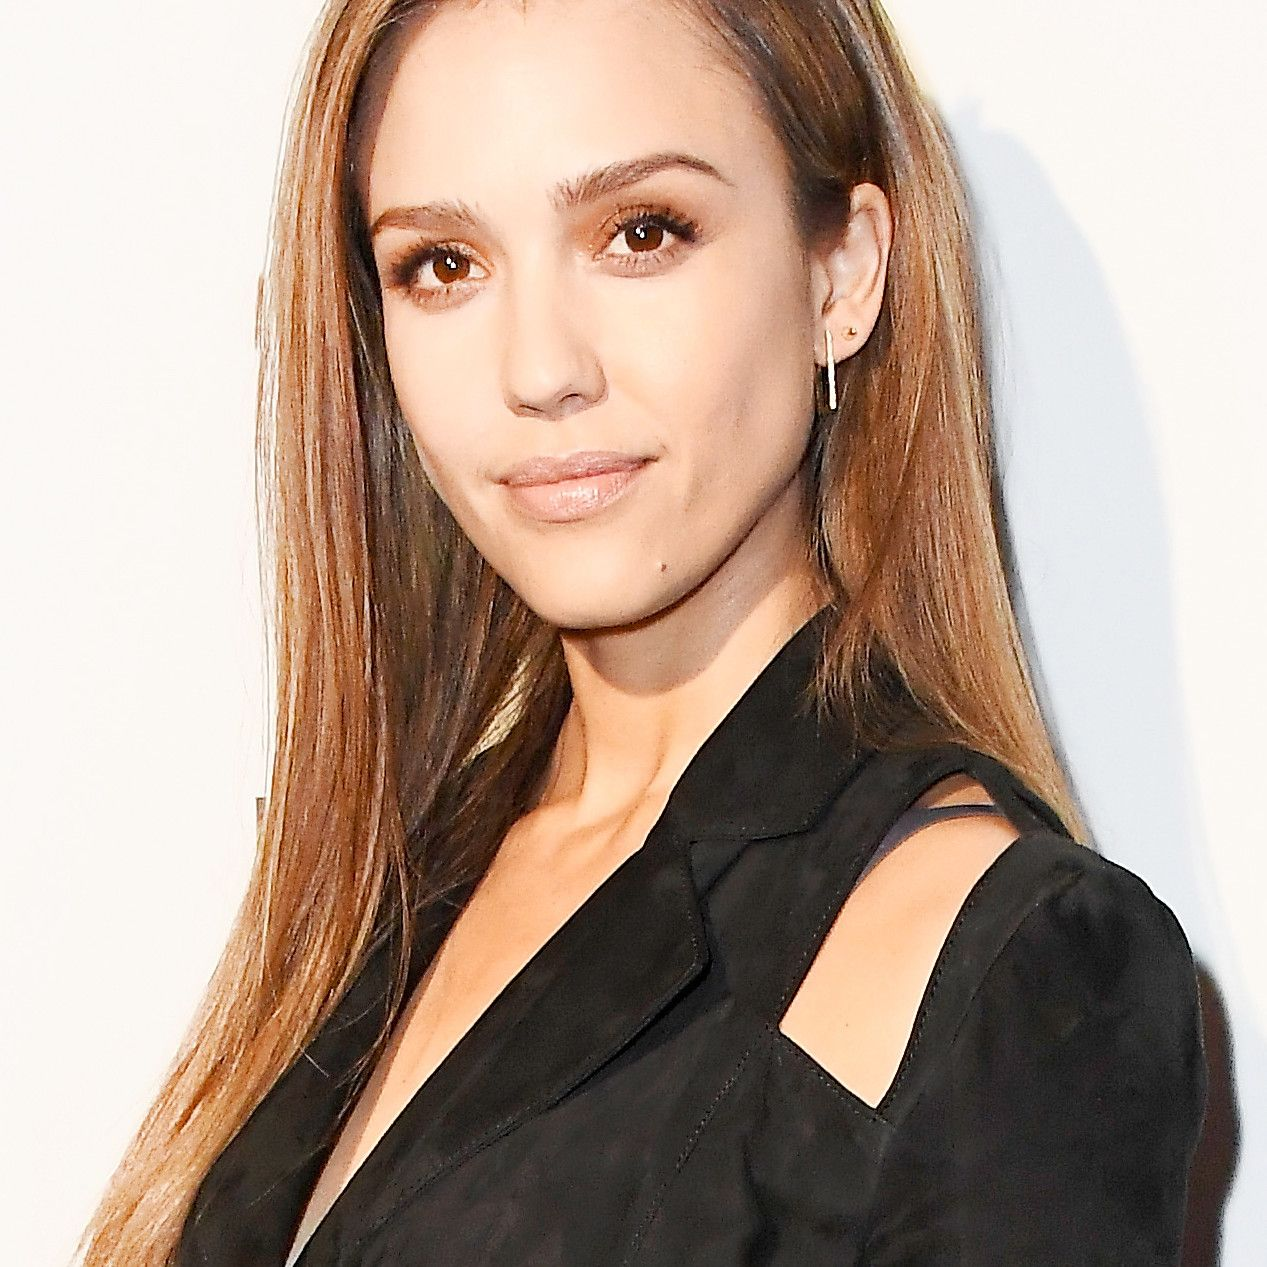 5 Awesome Makeup Tips From Jessica Alba's Makeup Artist